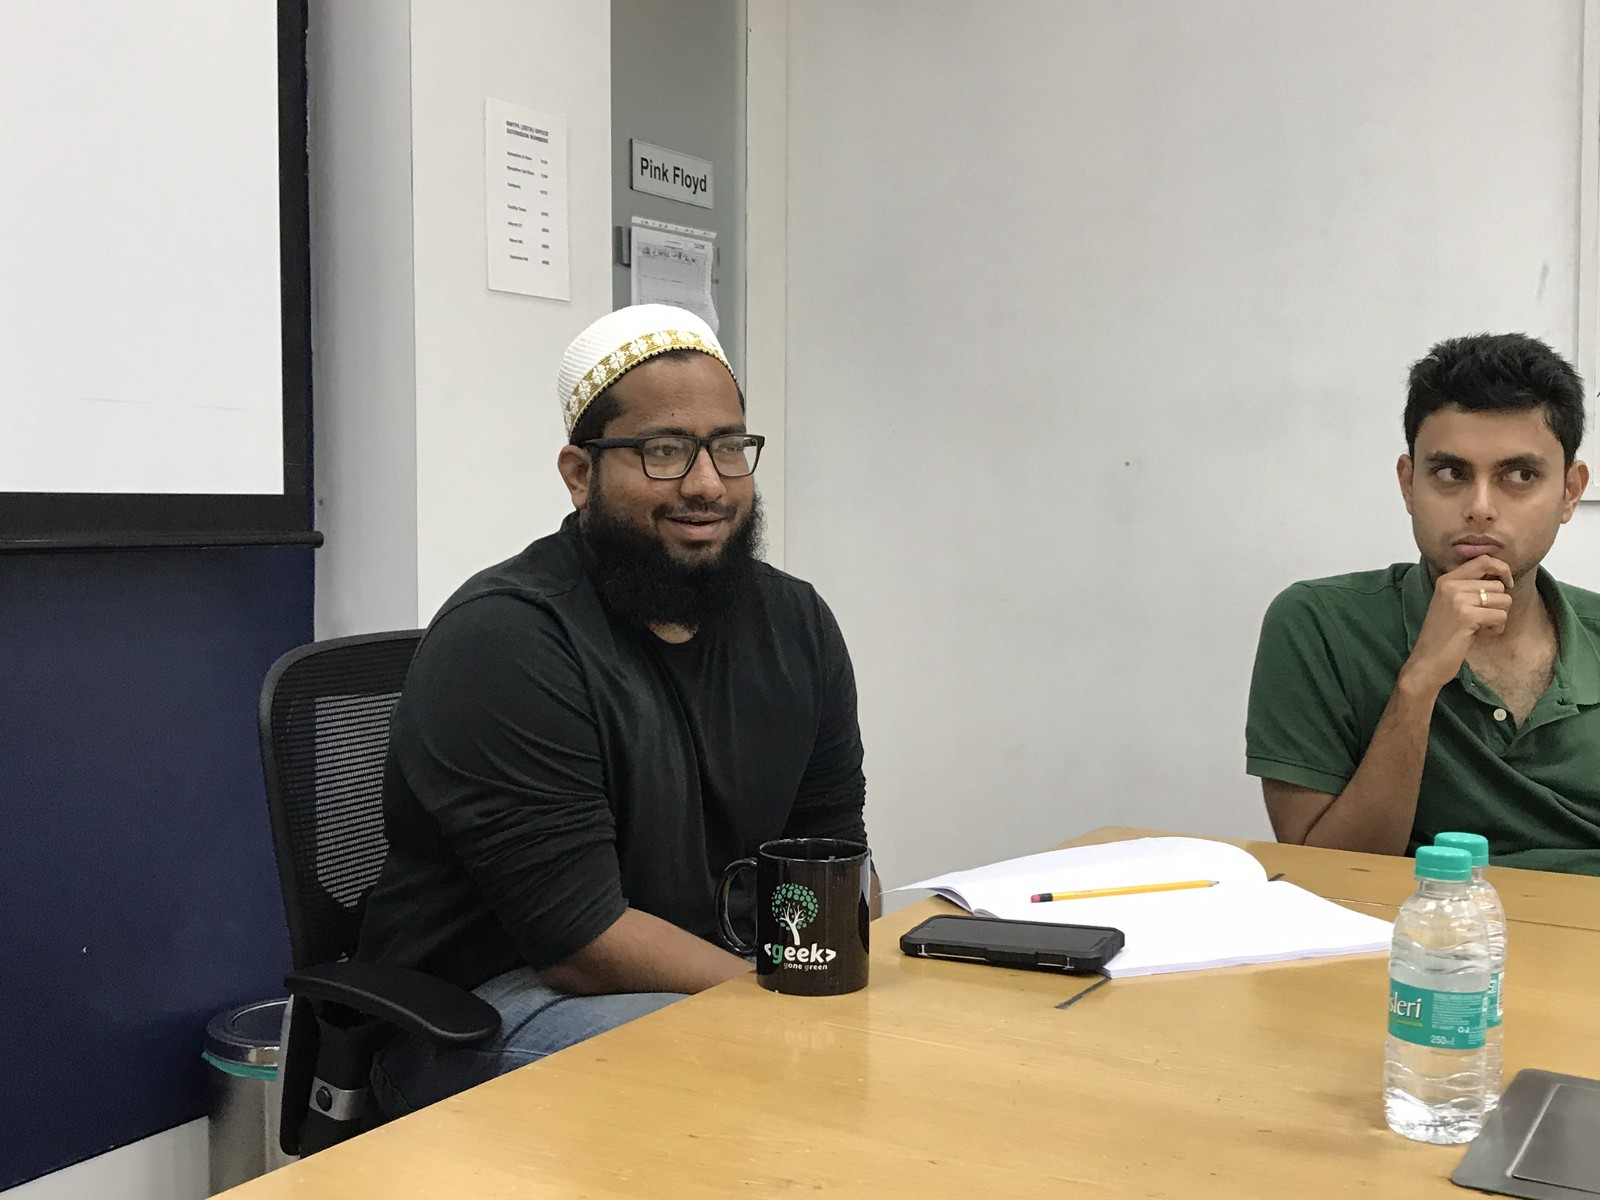 Mustafa (Left) and Kshitij (Right) explaining Zeta's design process